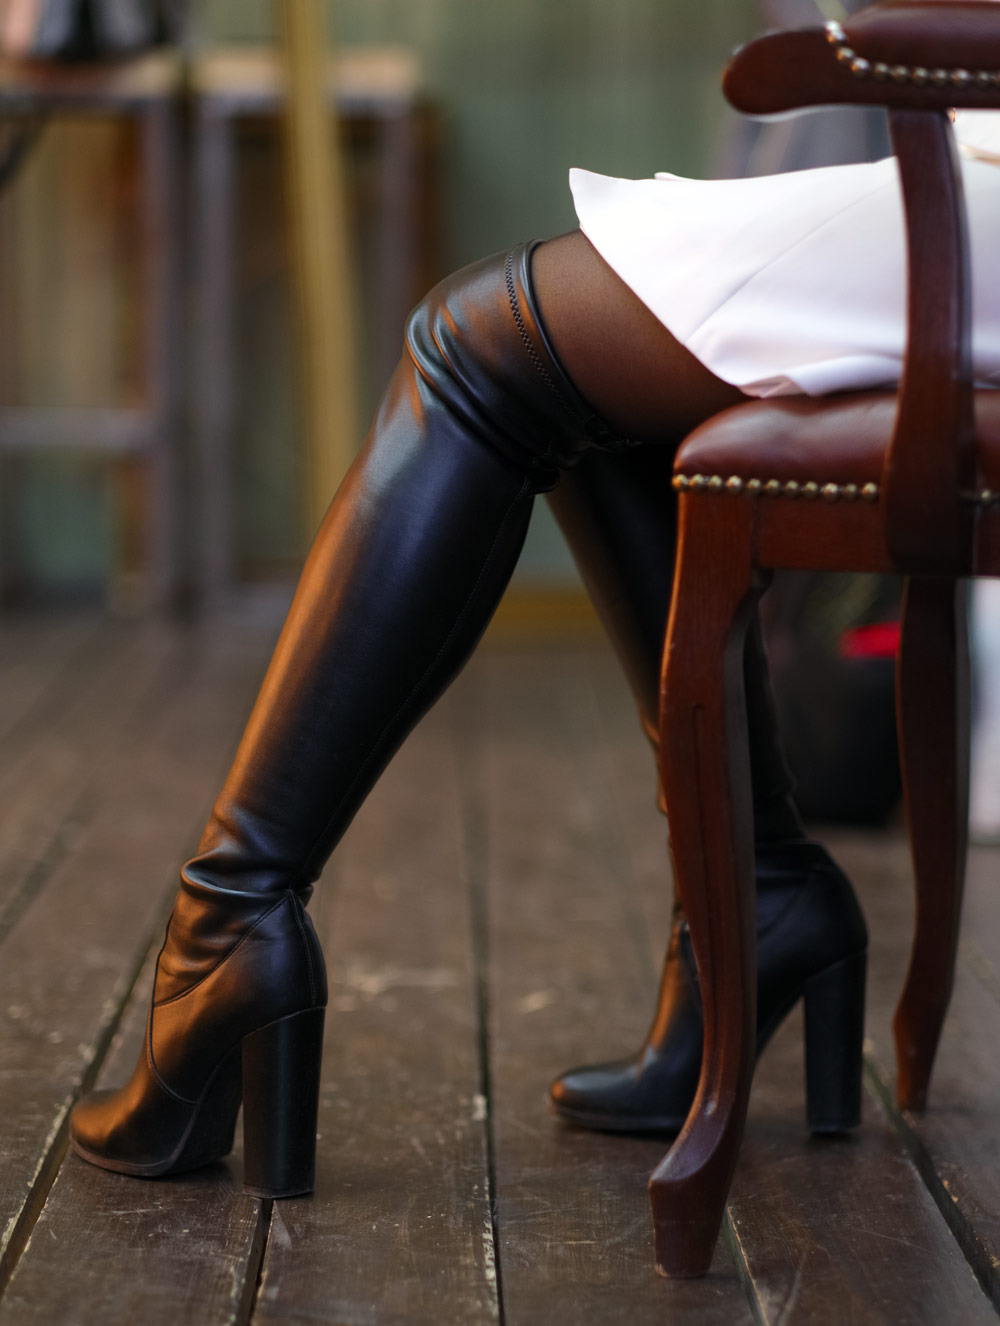 High demand of footwear sector for Leather Alternatives - faux leather boots